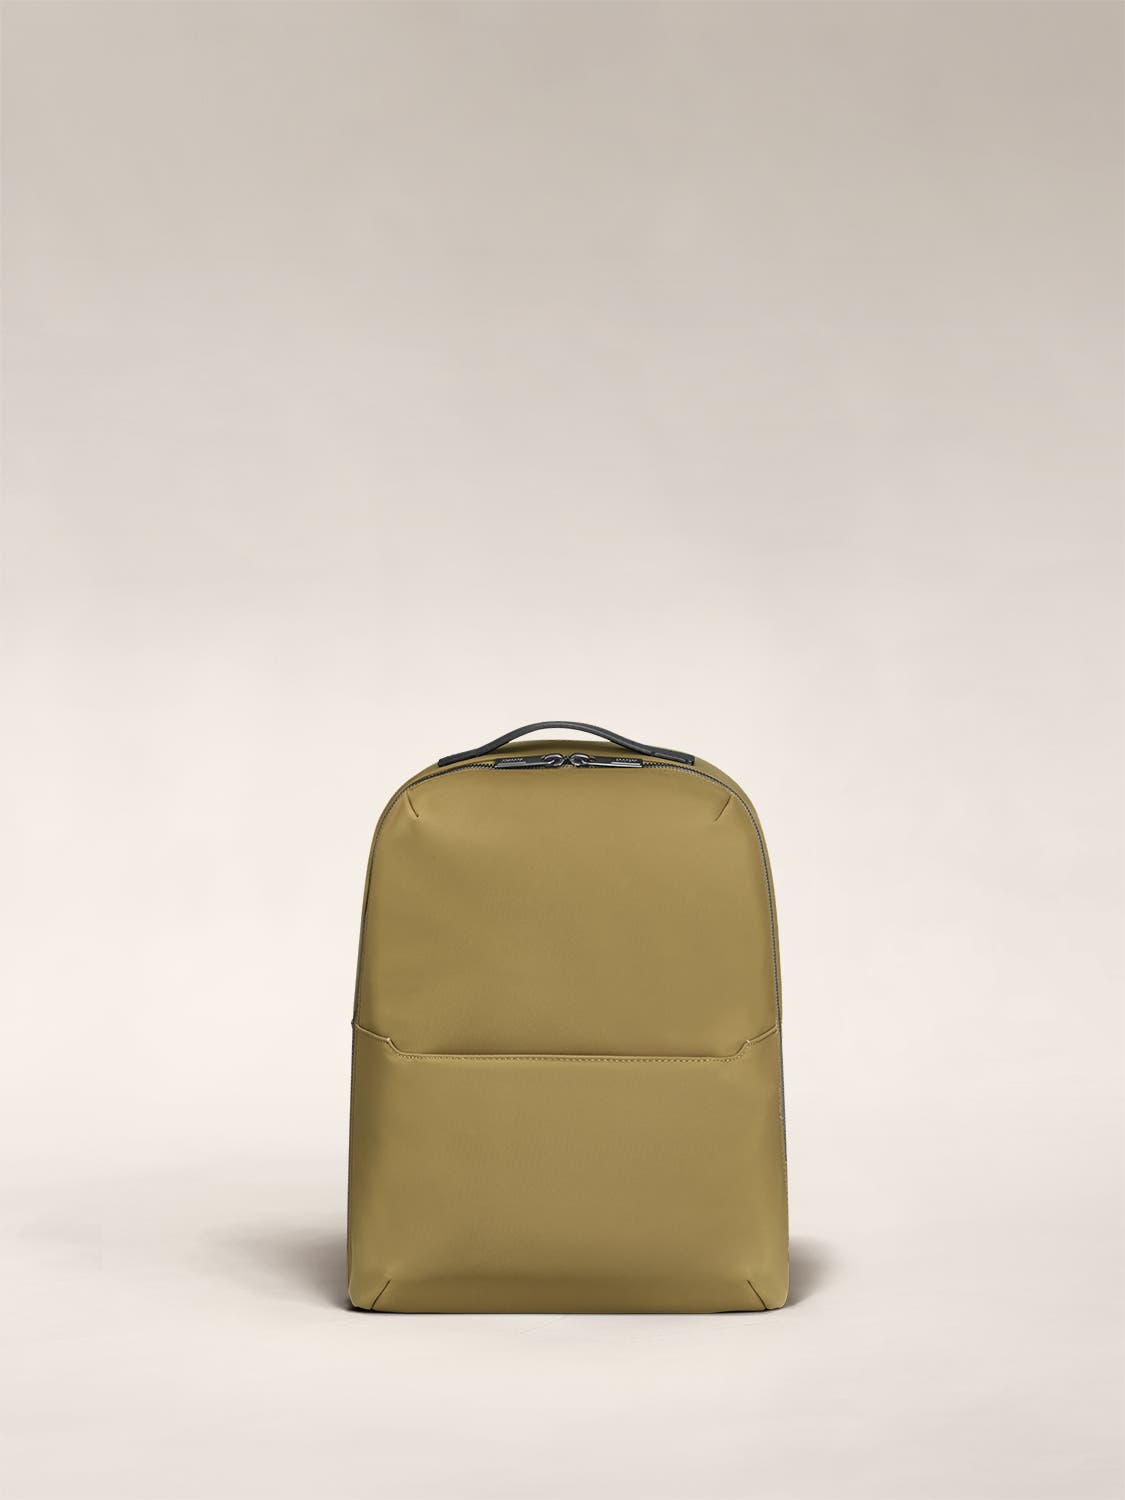 Small backpack in moss green with one small pocket in the front.